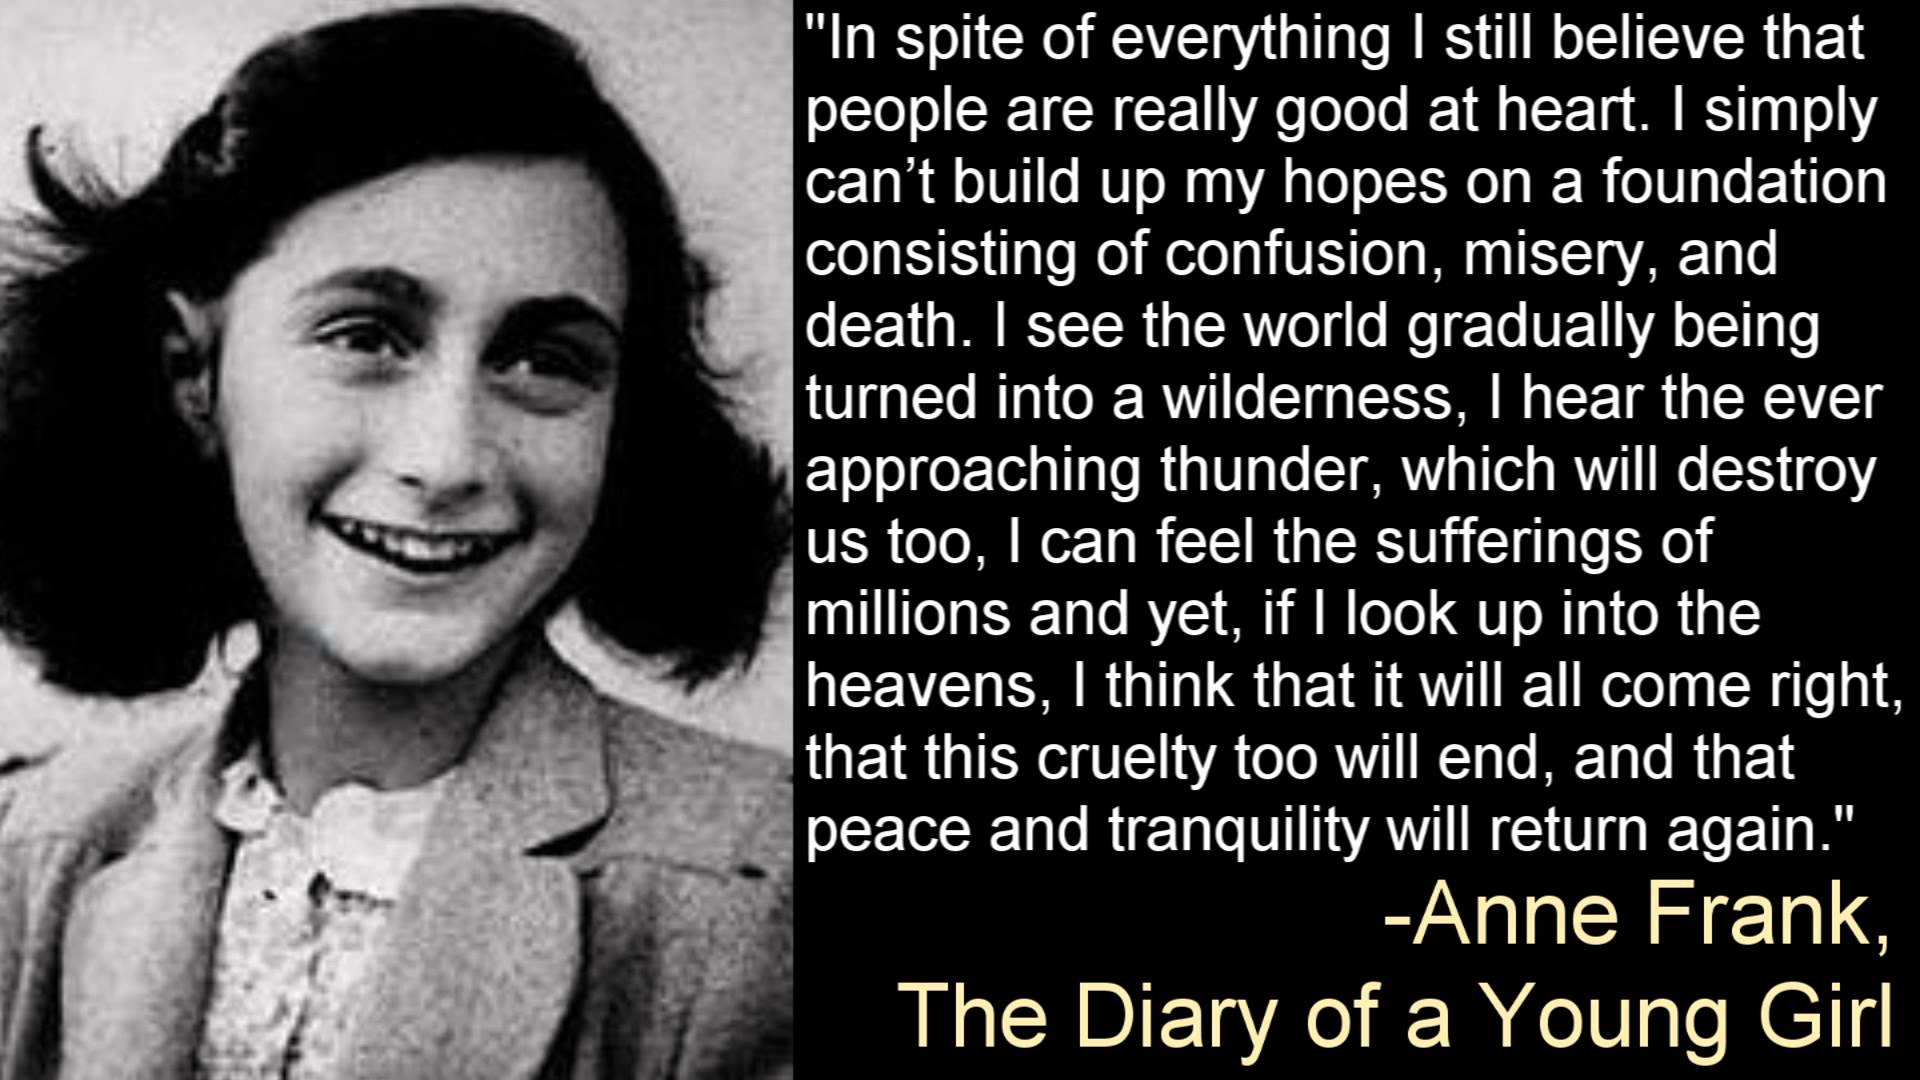 The Ever Approaching Thunder - Anne Frank, The Diary of a Young Girl